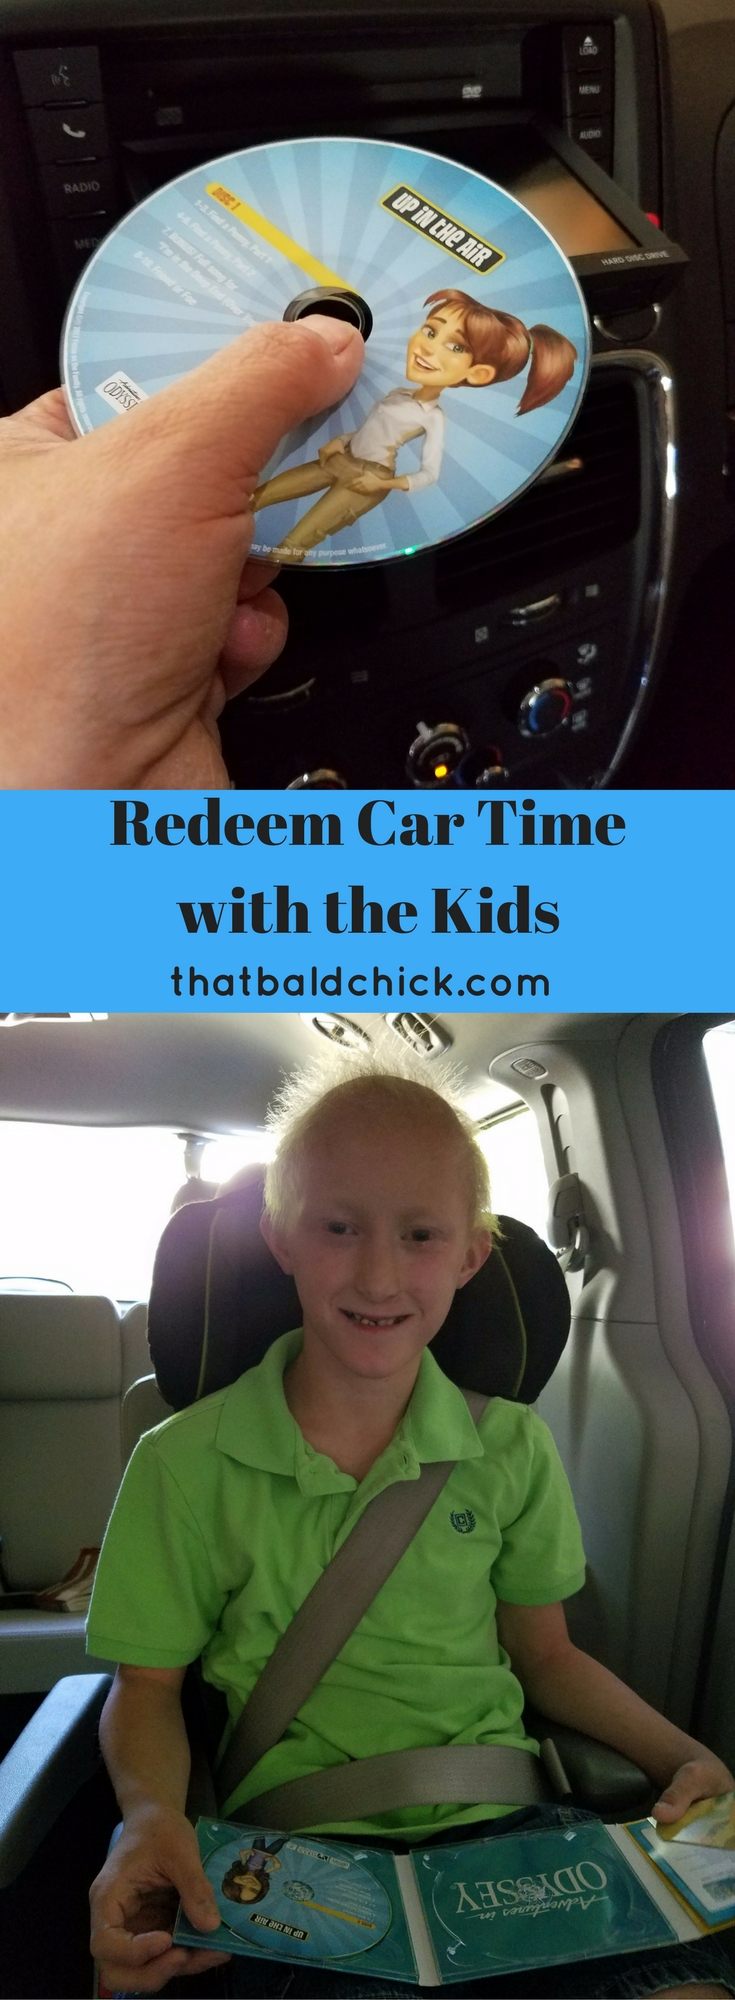 When boredom sets in, they get snarly. Lately, I've been using kids audiobooks and cd's to redeem car time with the kids. AD